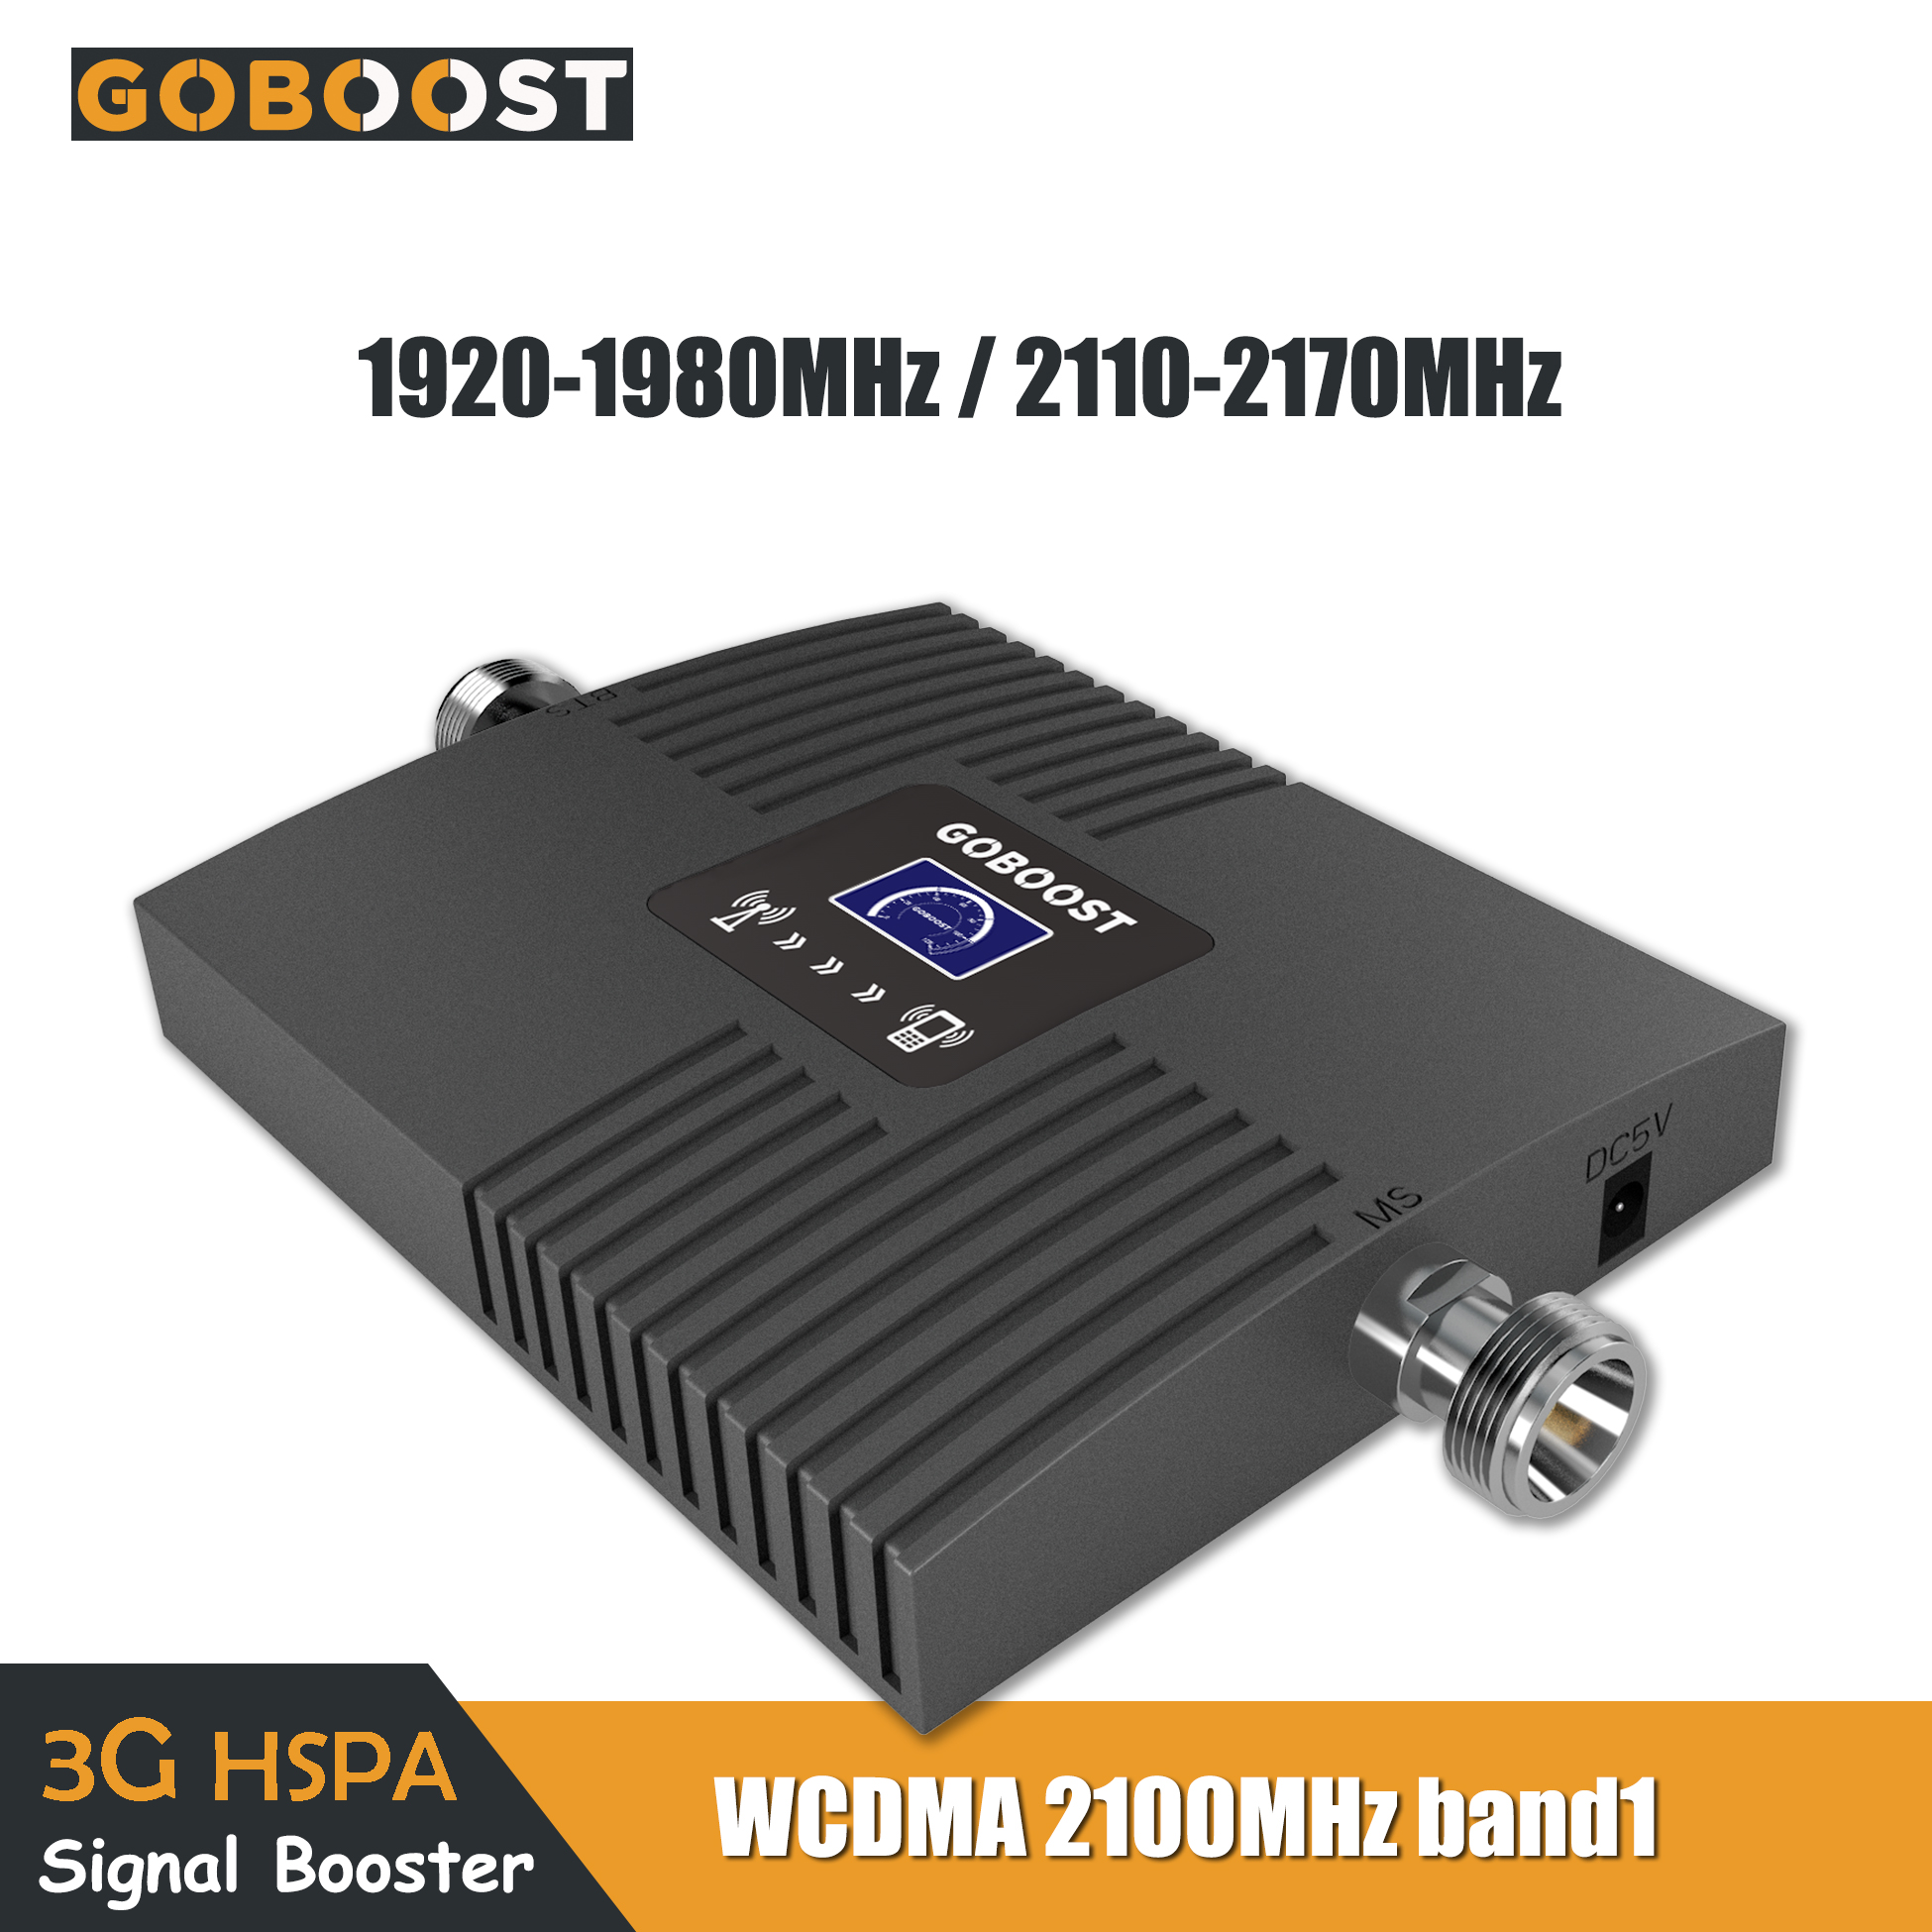 Mini WCDMA 3G HSPA+ UMTS 2100mhz Band1cell Phone Cellular Signal Booster LCD Display Mobile Amplifier Repeater Network 65dB Gain